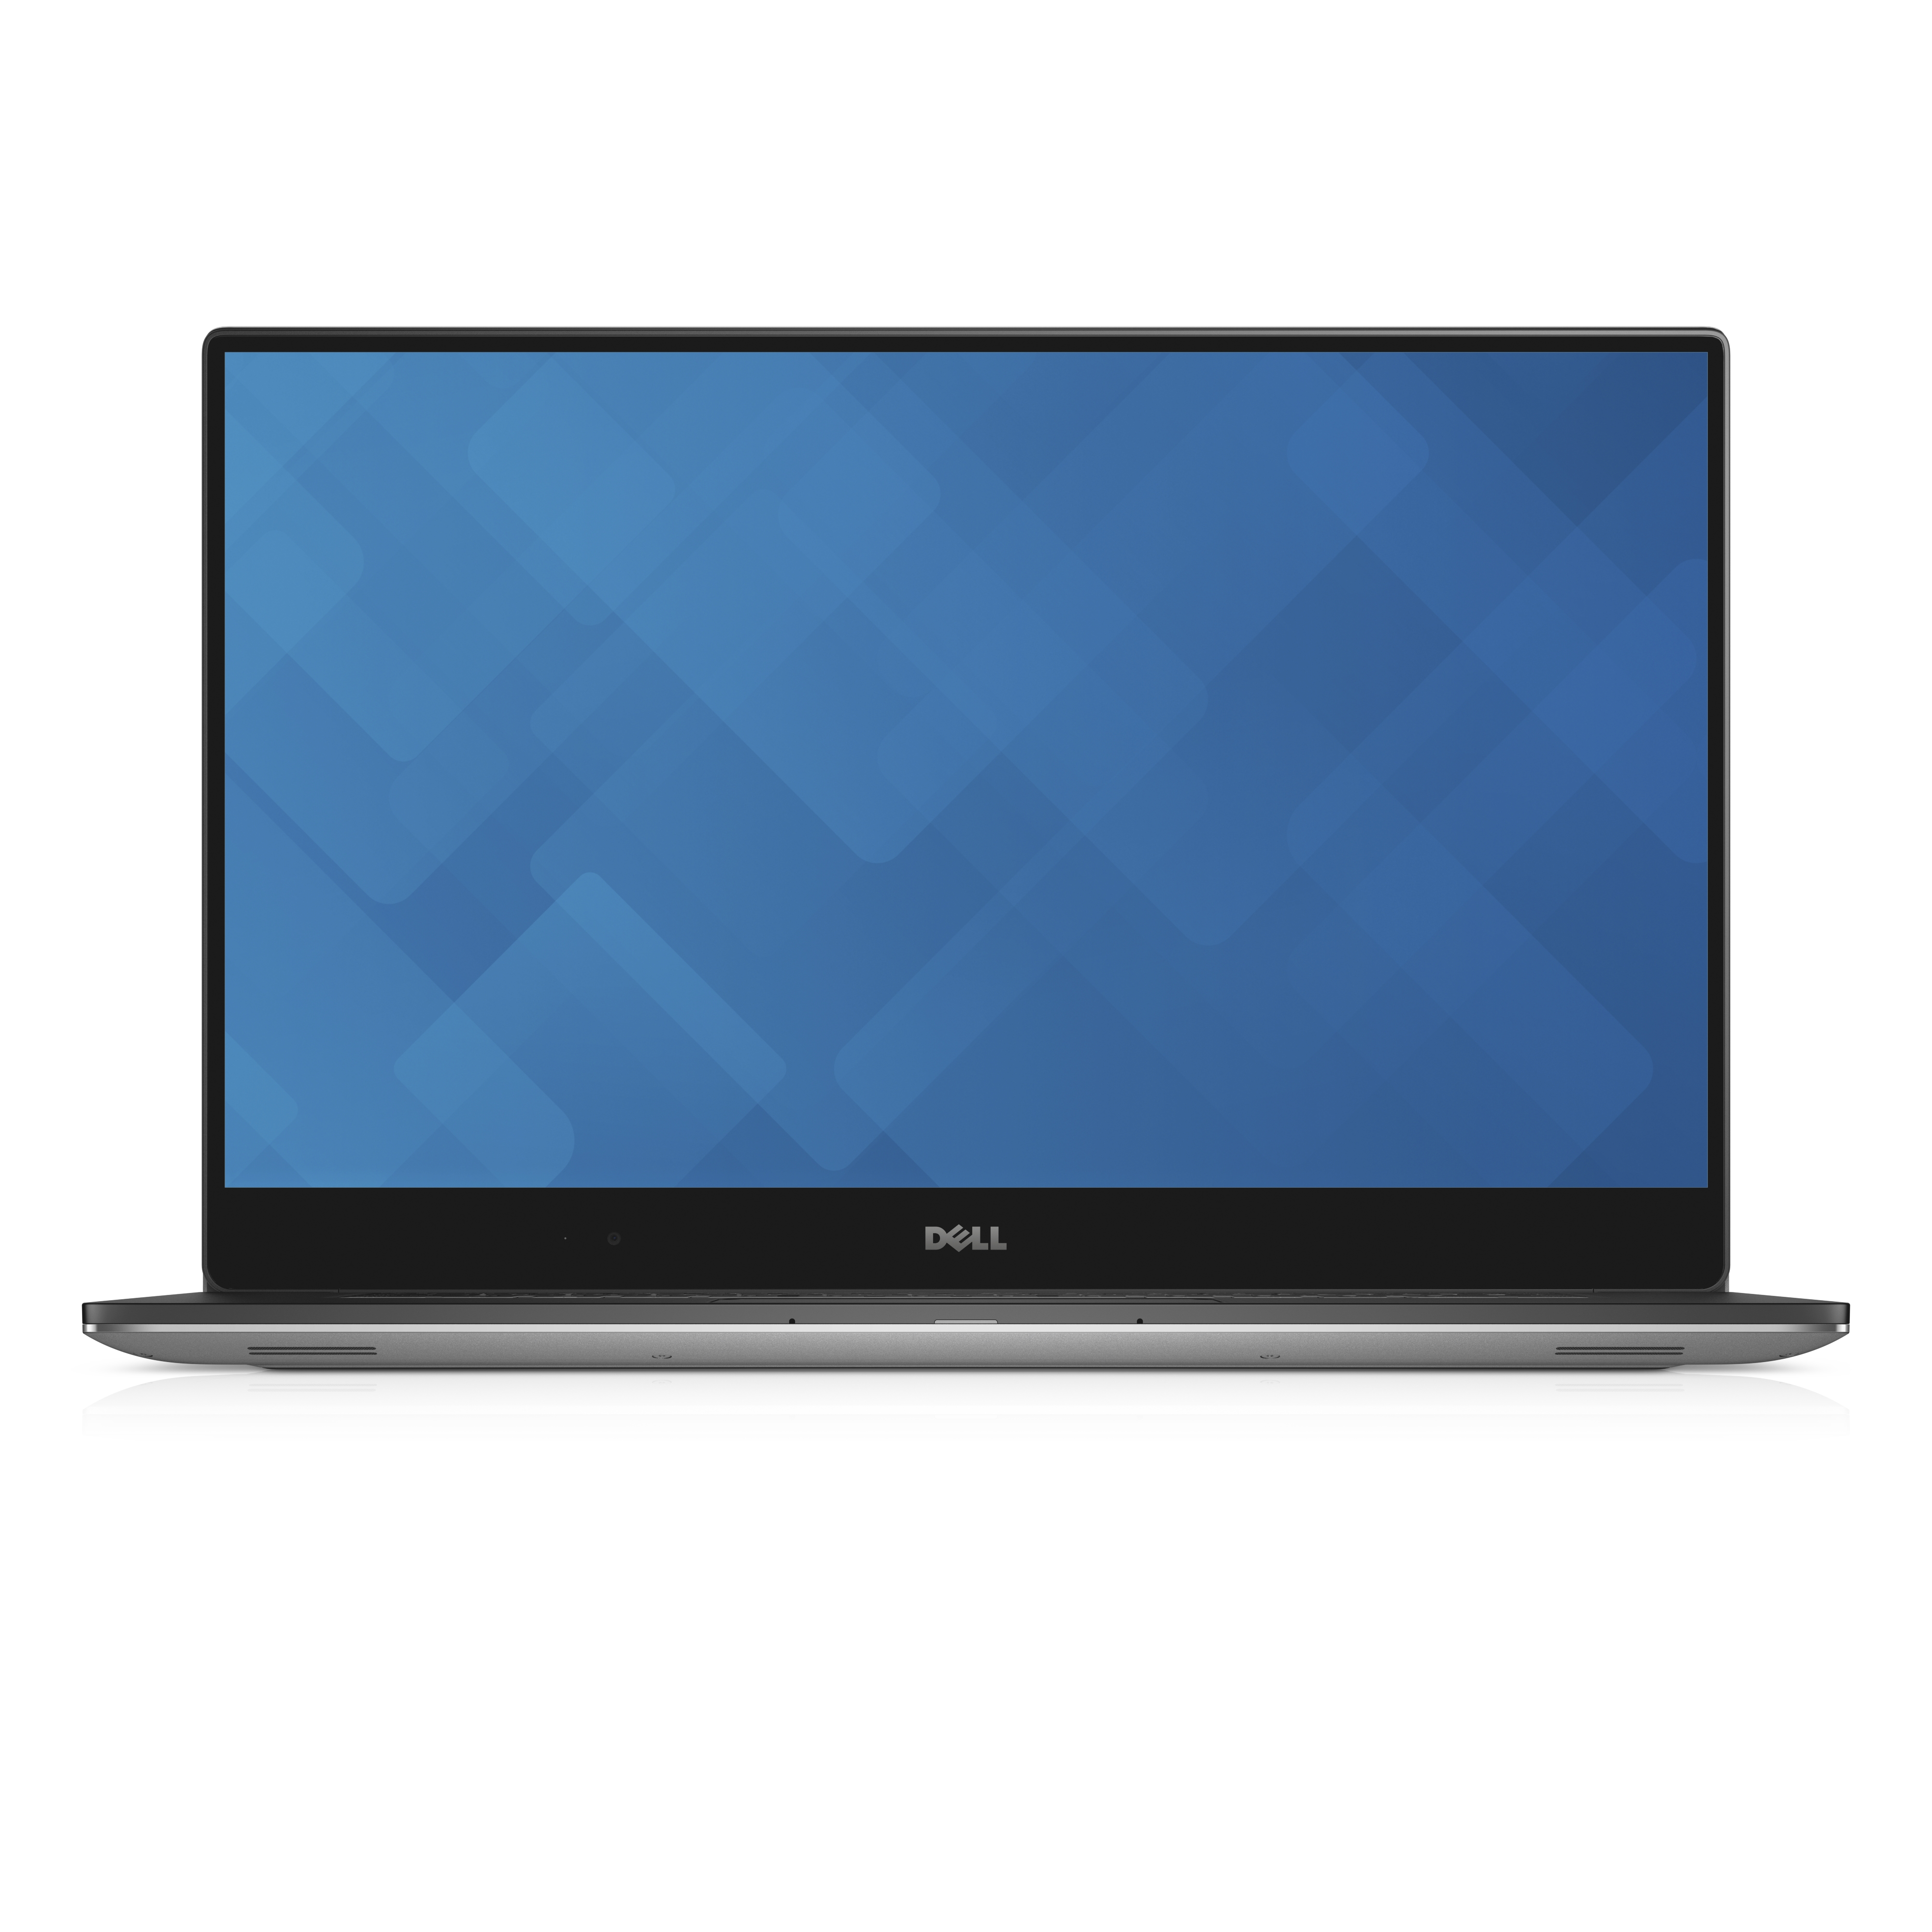 Notebook Dell Precision 5520 15.6 Full HD Intel Core i7-7820HQ M1200-4GB RAM 32GB SSD 512GB Windows 10 Pro